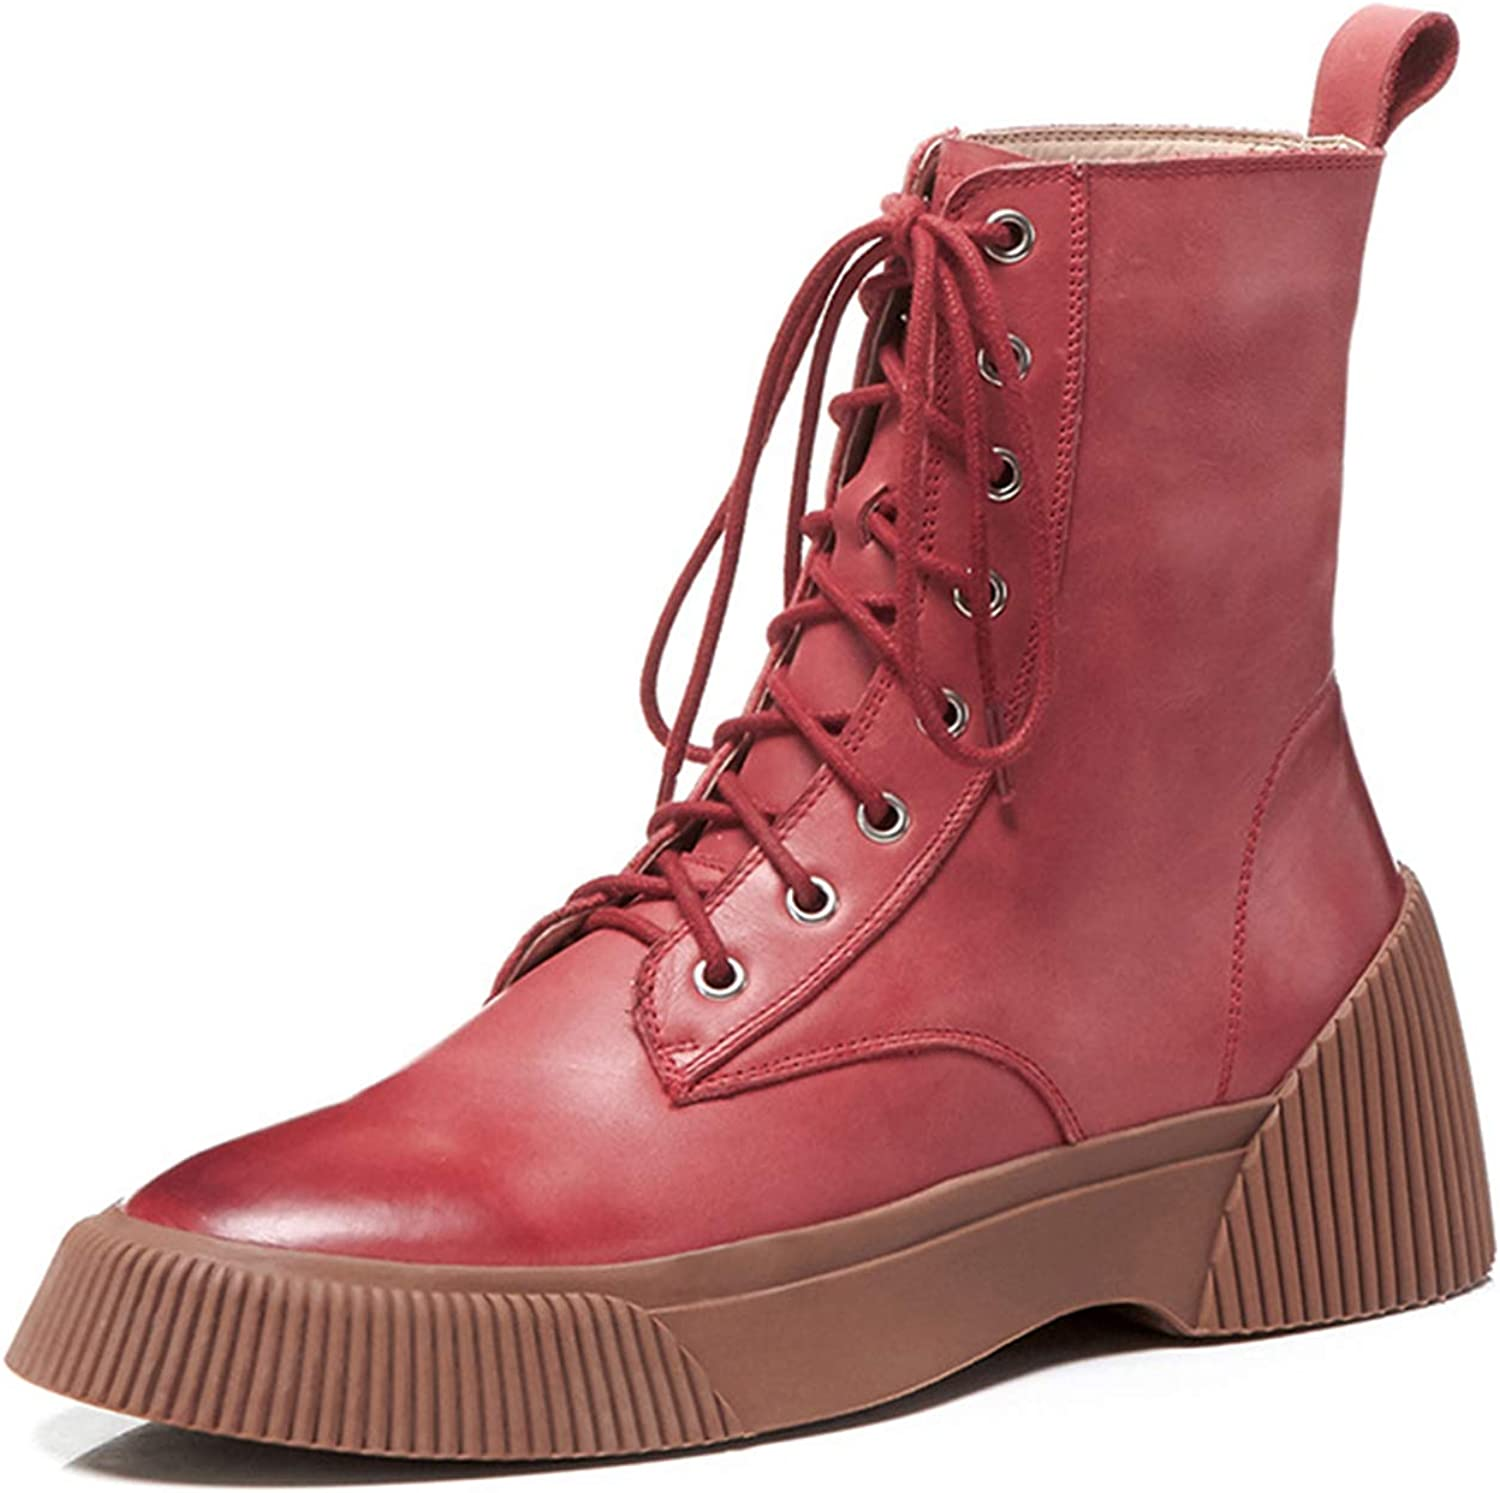 Fashion Winter Round Toe Boots for Women with Lace Up Casual Short Block Anti-Slip Martin Boots Ladies Girls Indoor Outdoor Daily Wear,Red